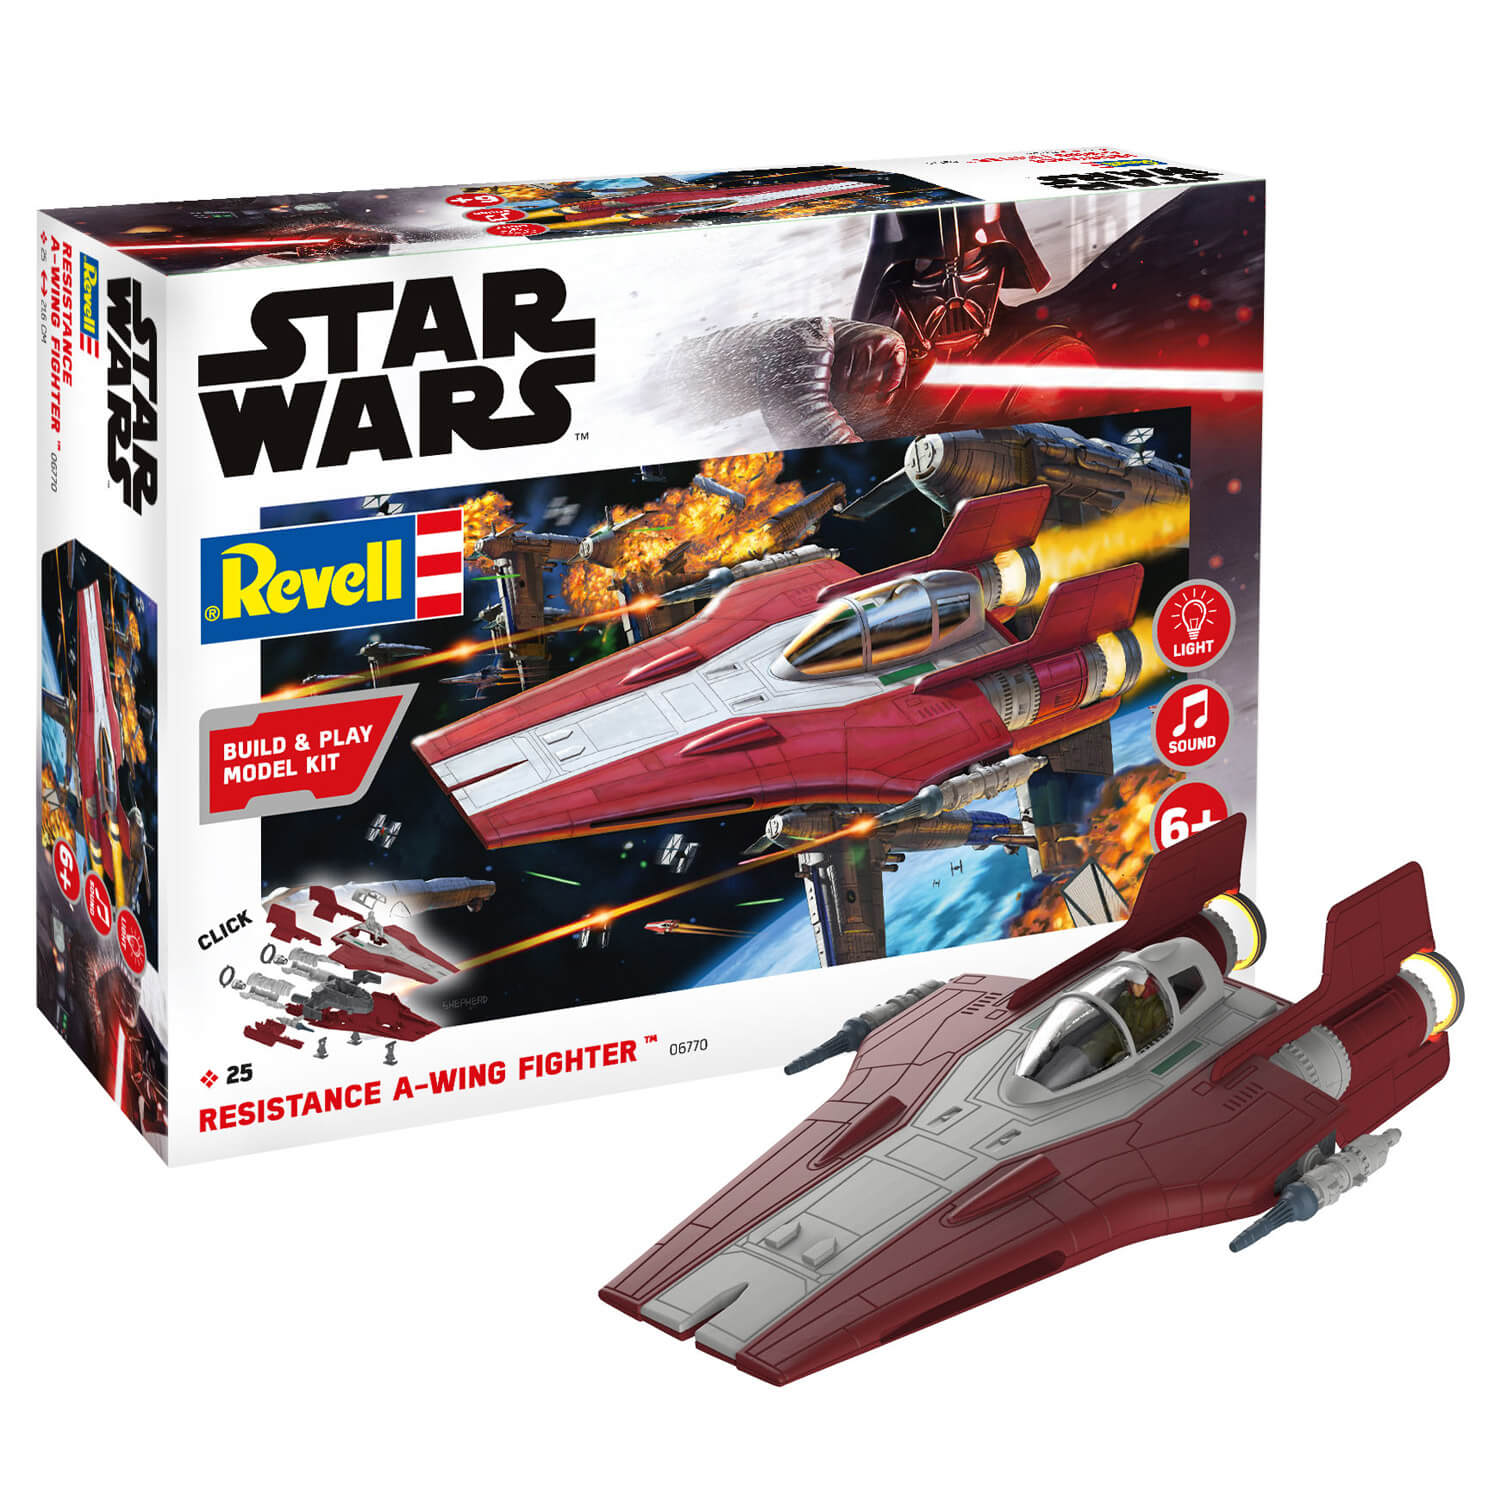 Maquette Star Wars : Build & Play : Resistance A-wing Fighter, Rouge